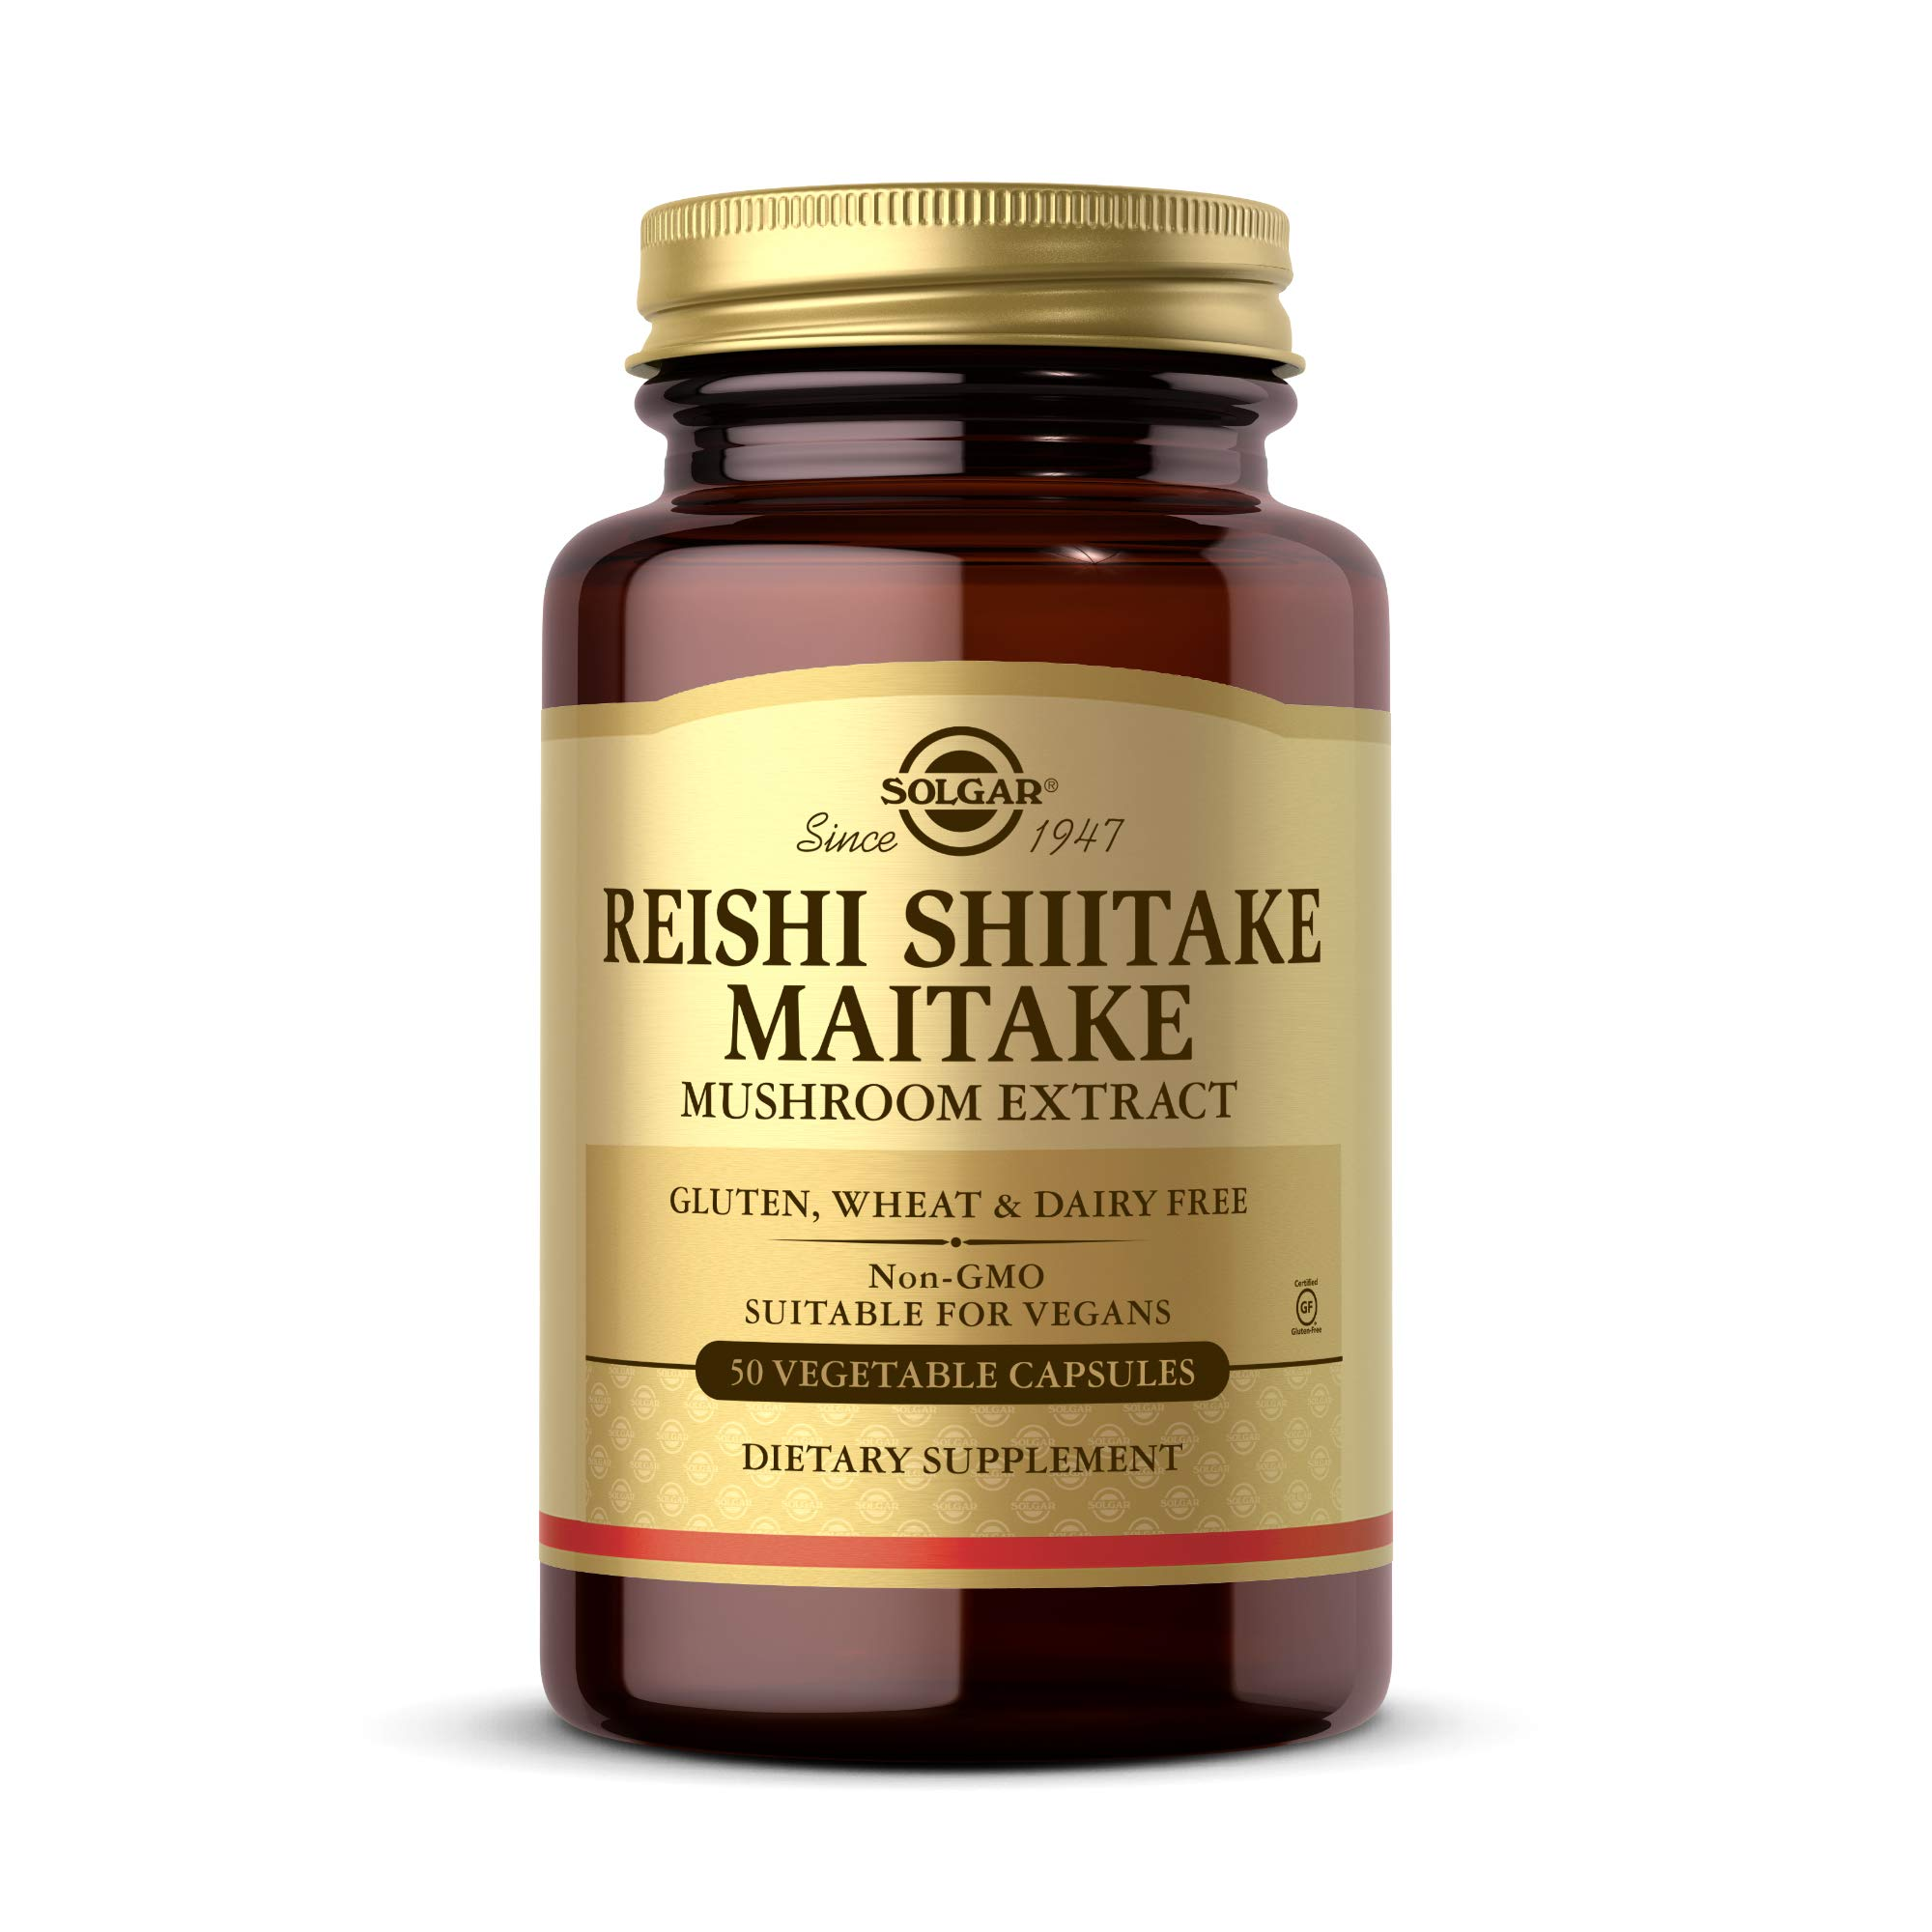 Solgar Multi-Mushroom Complex, 50 Vegetable Capsules - Reishi, Shiitake, Maitake Mushroom Extract - Natural Source of Beta Glucans - Non-GMO, Vegan, Gluten Free, Dairy Free - 50 Servings